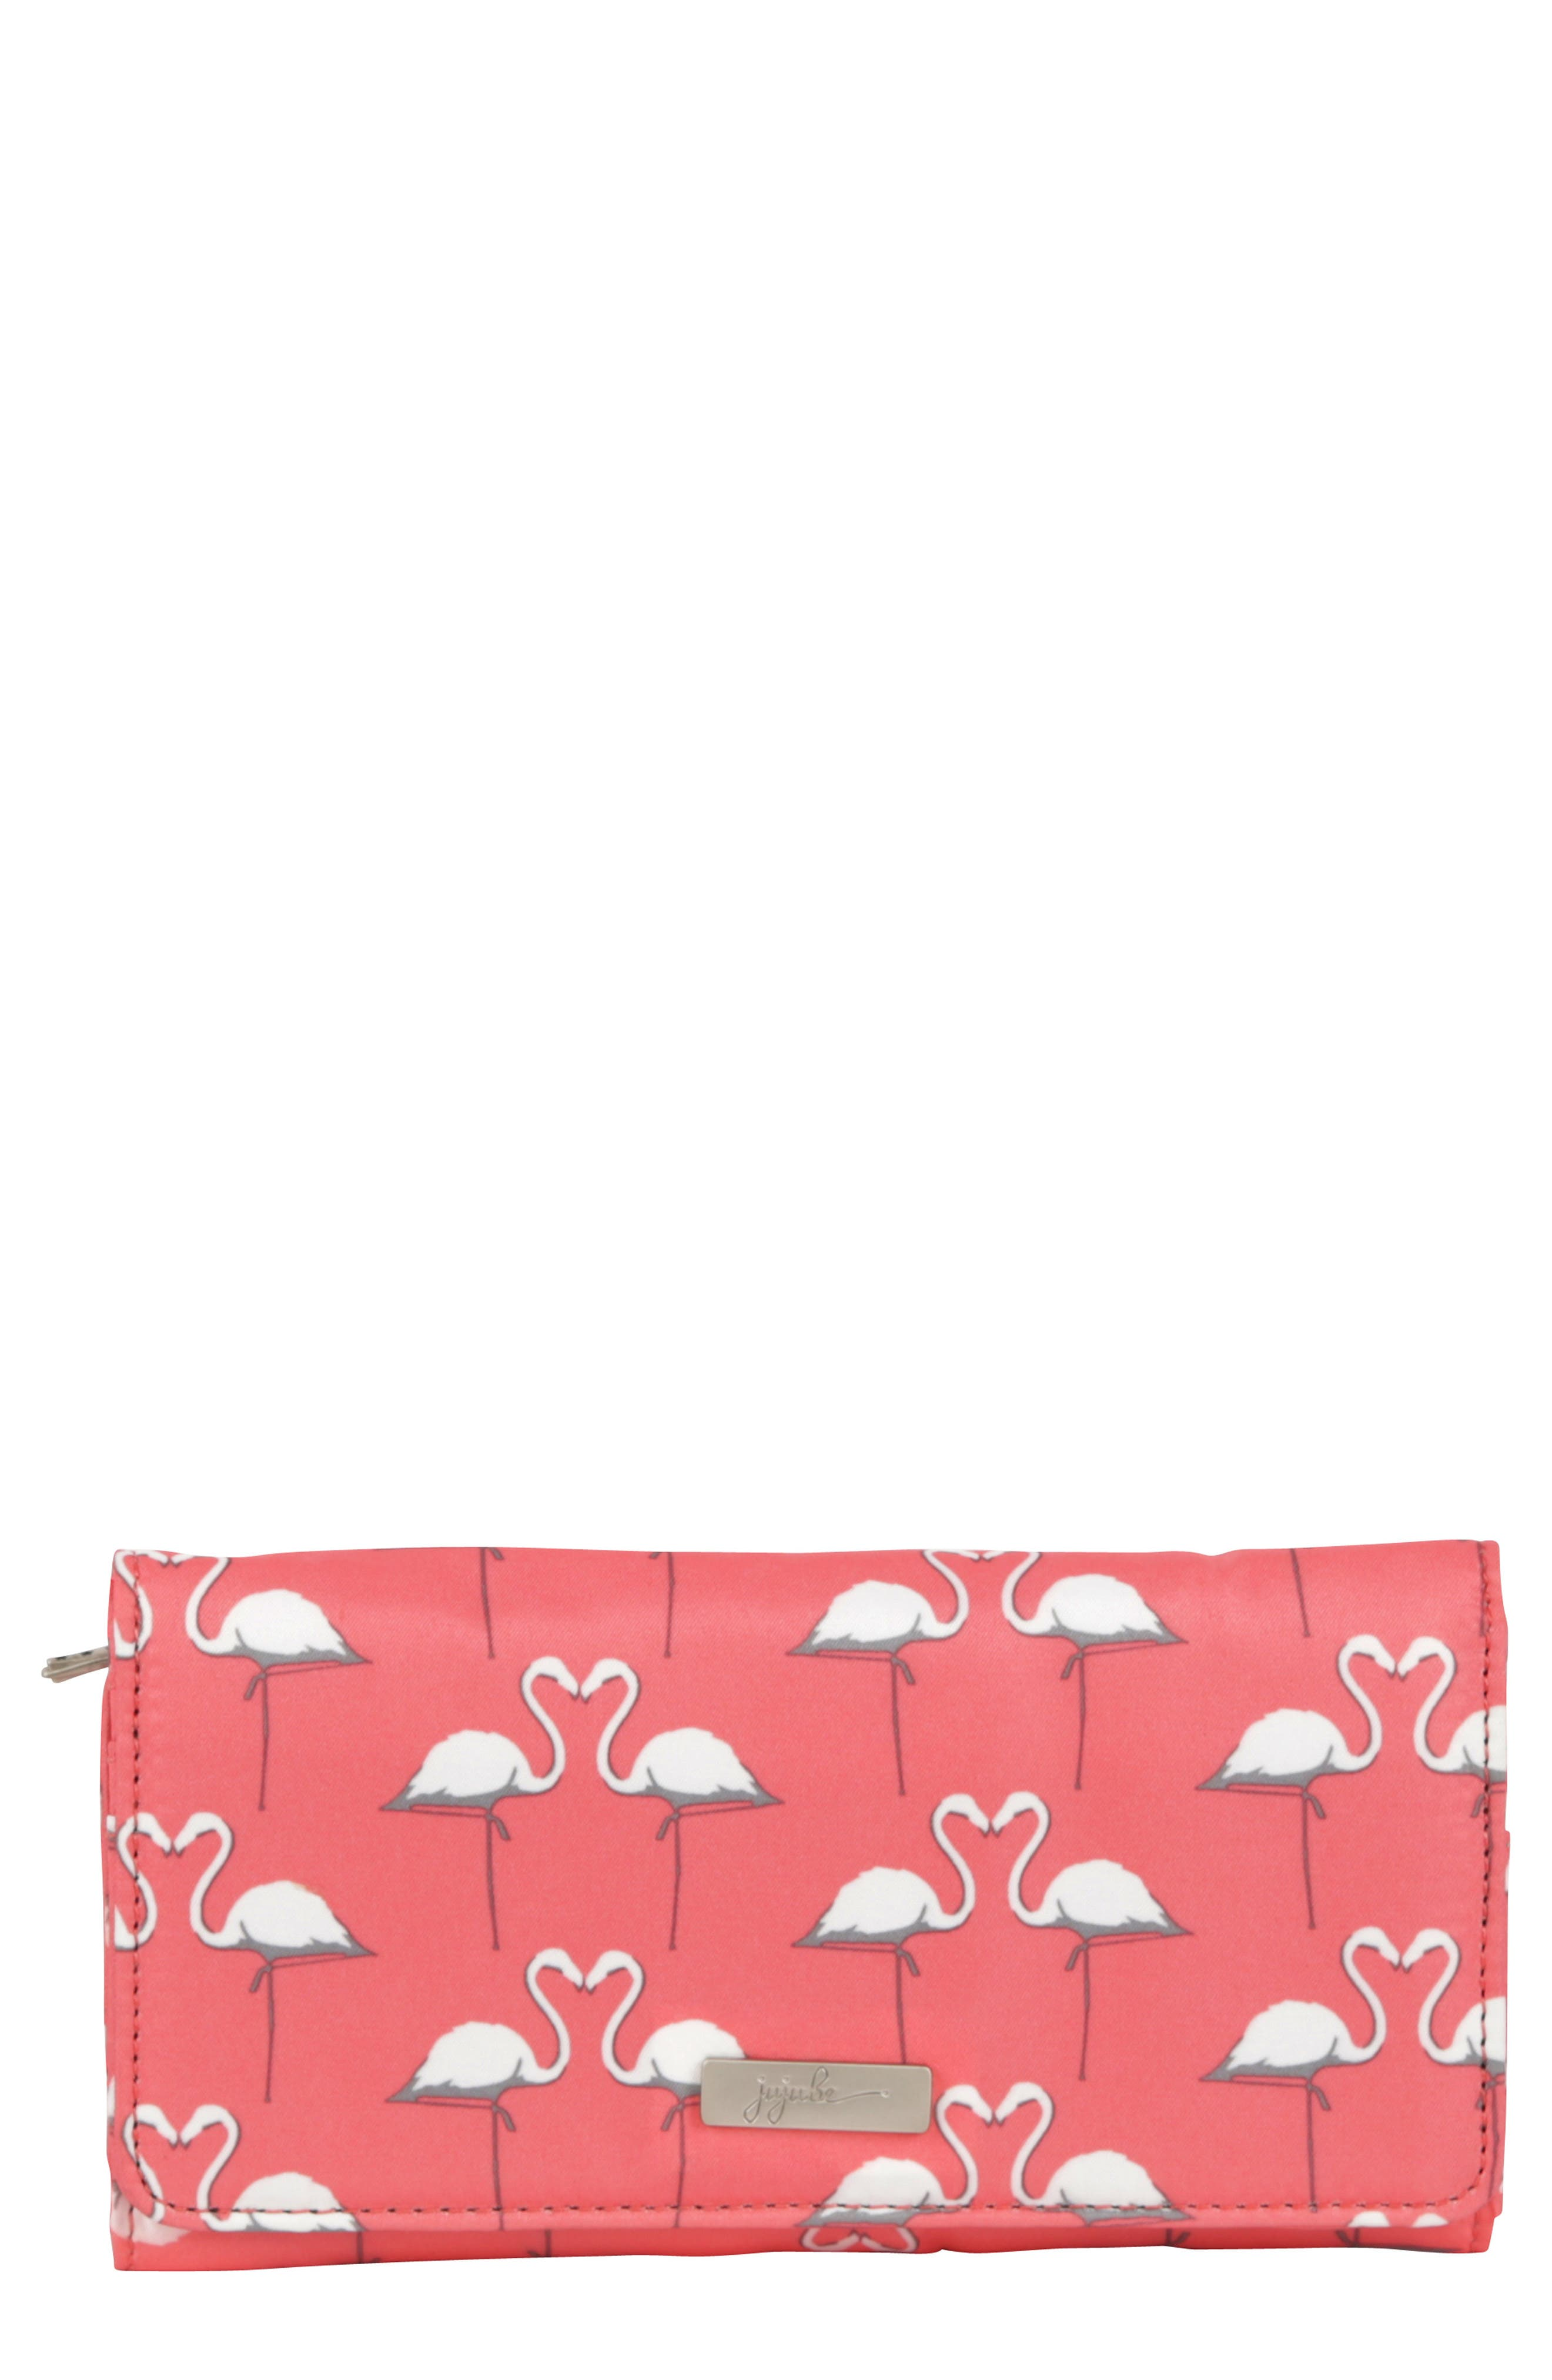 Be Rich - Coastal Collection Trifold Clutch Wallet,                         Main,                         color, Key West